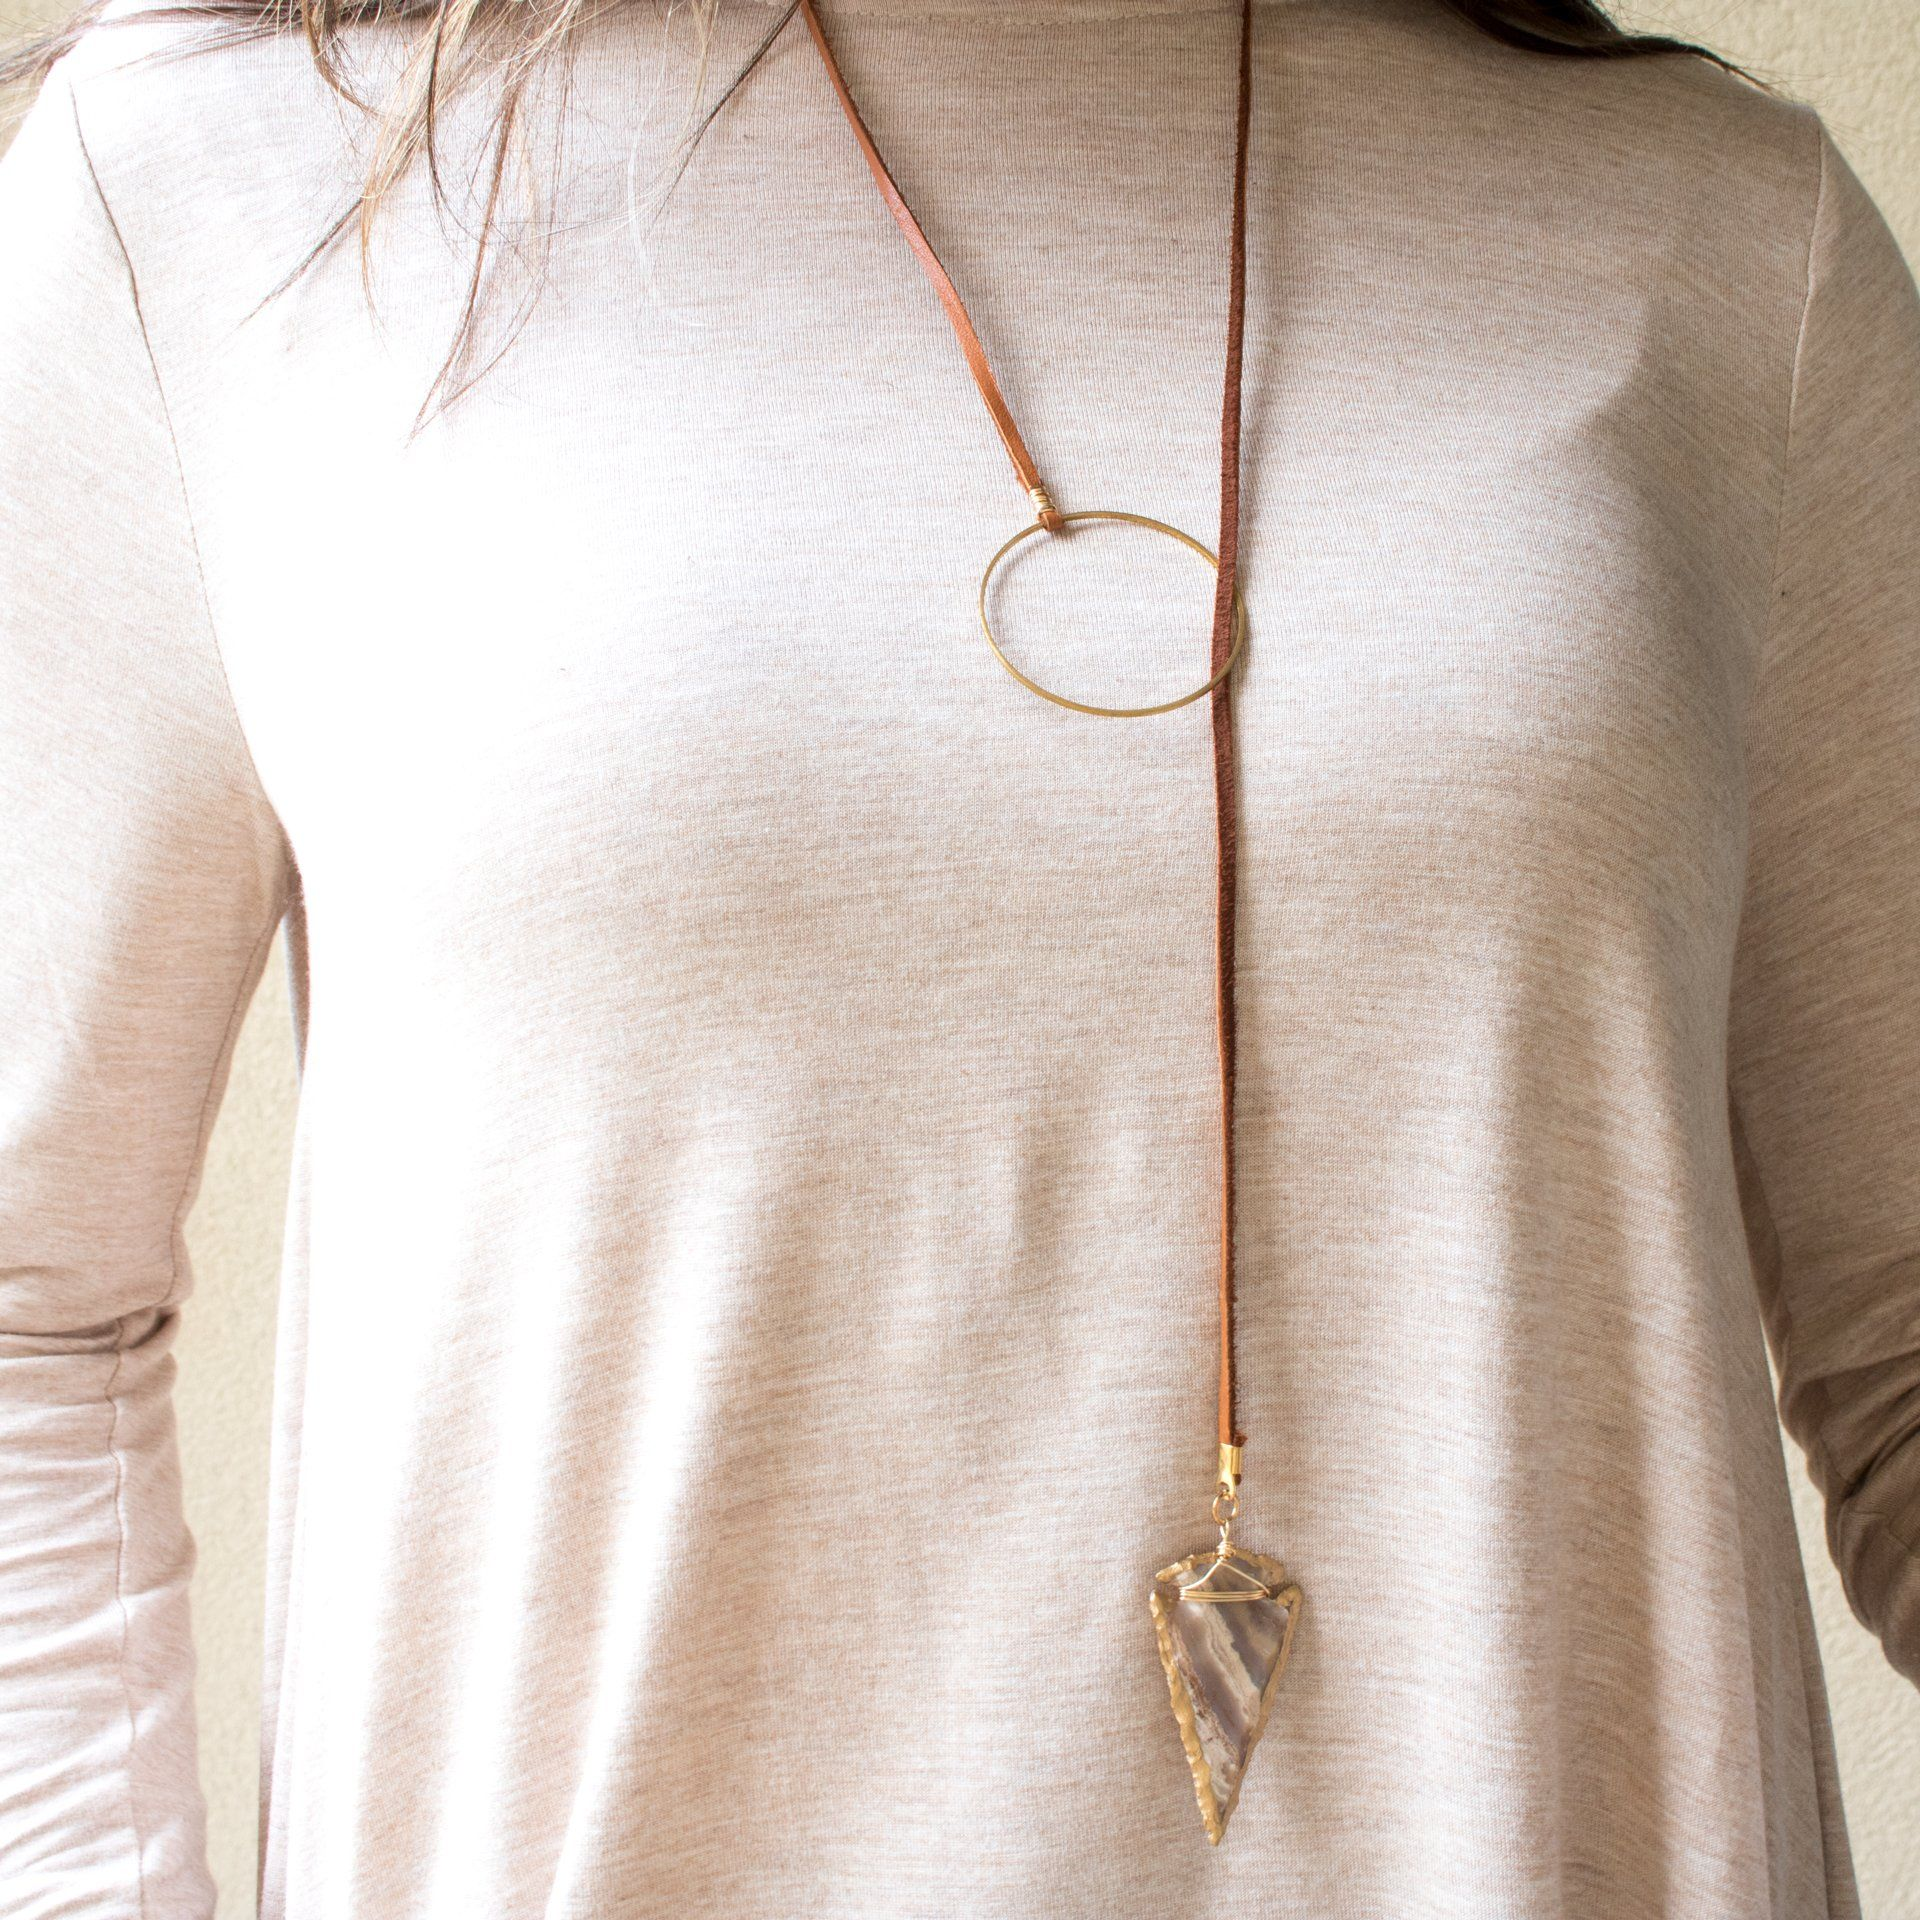 Arrowhead Lariat Wrap Necklace